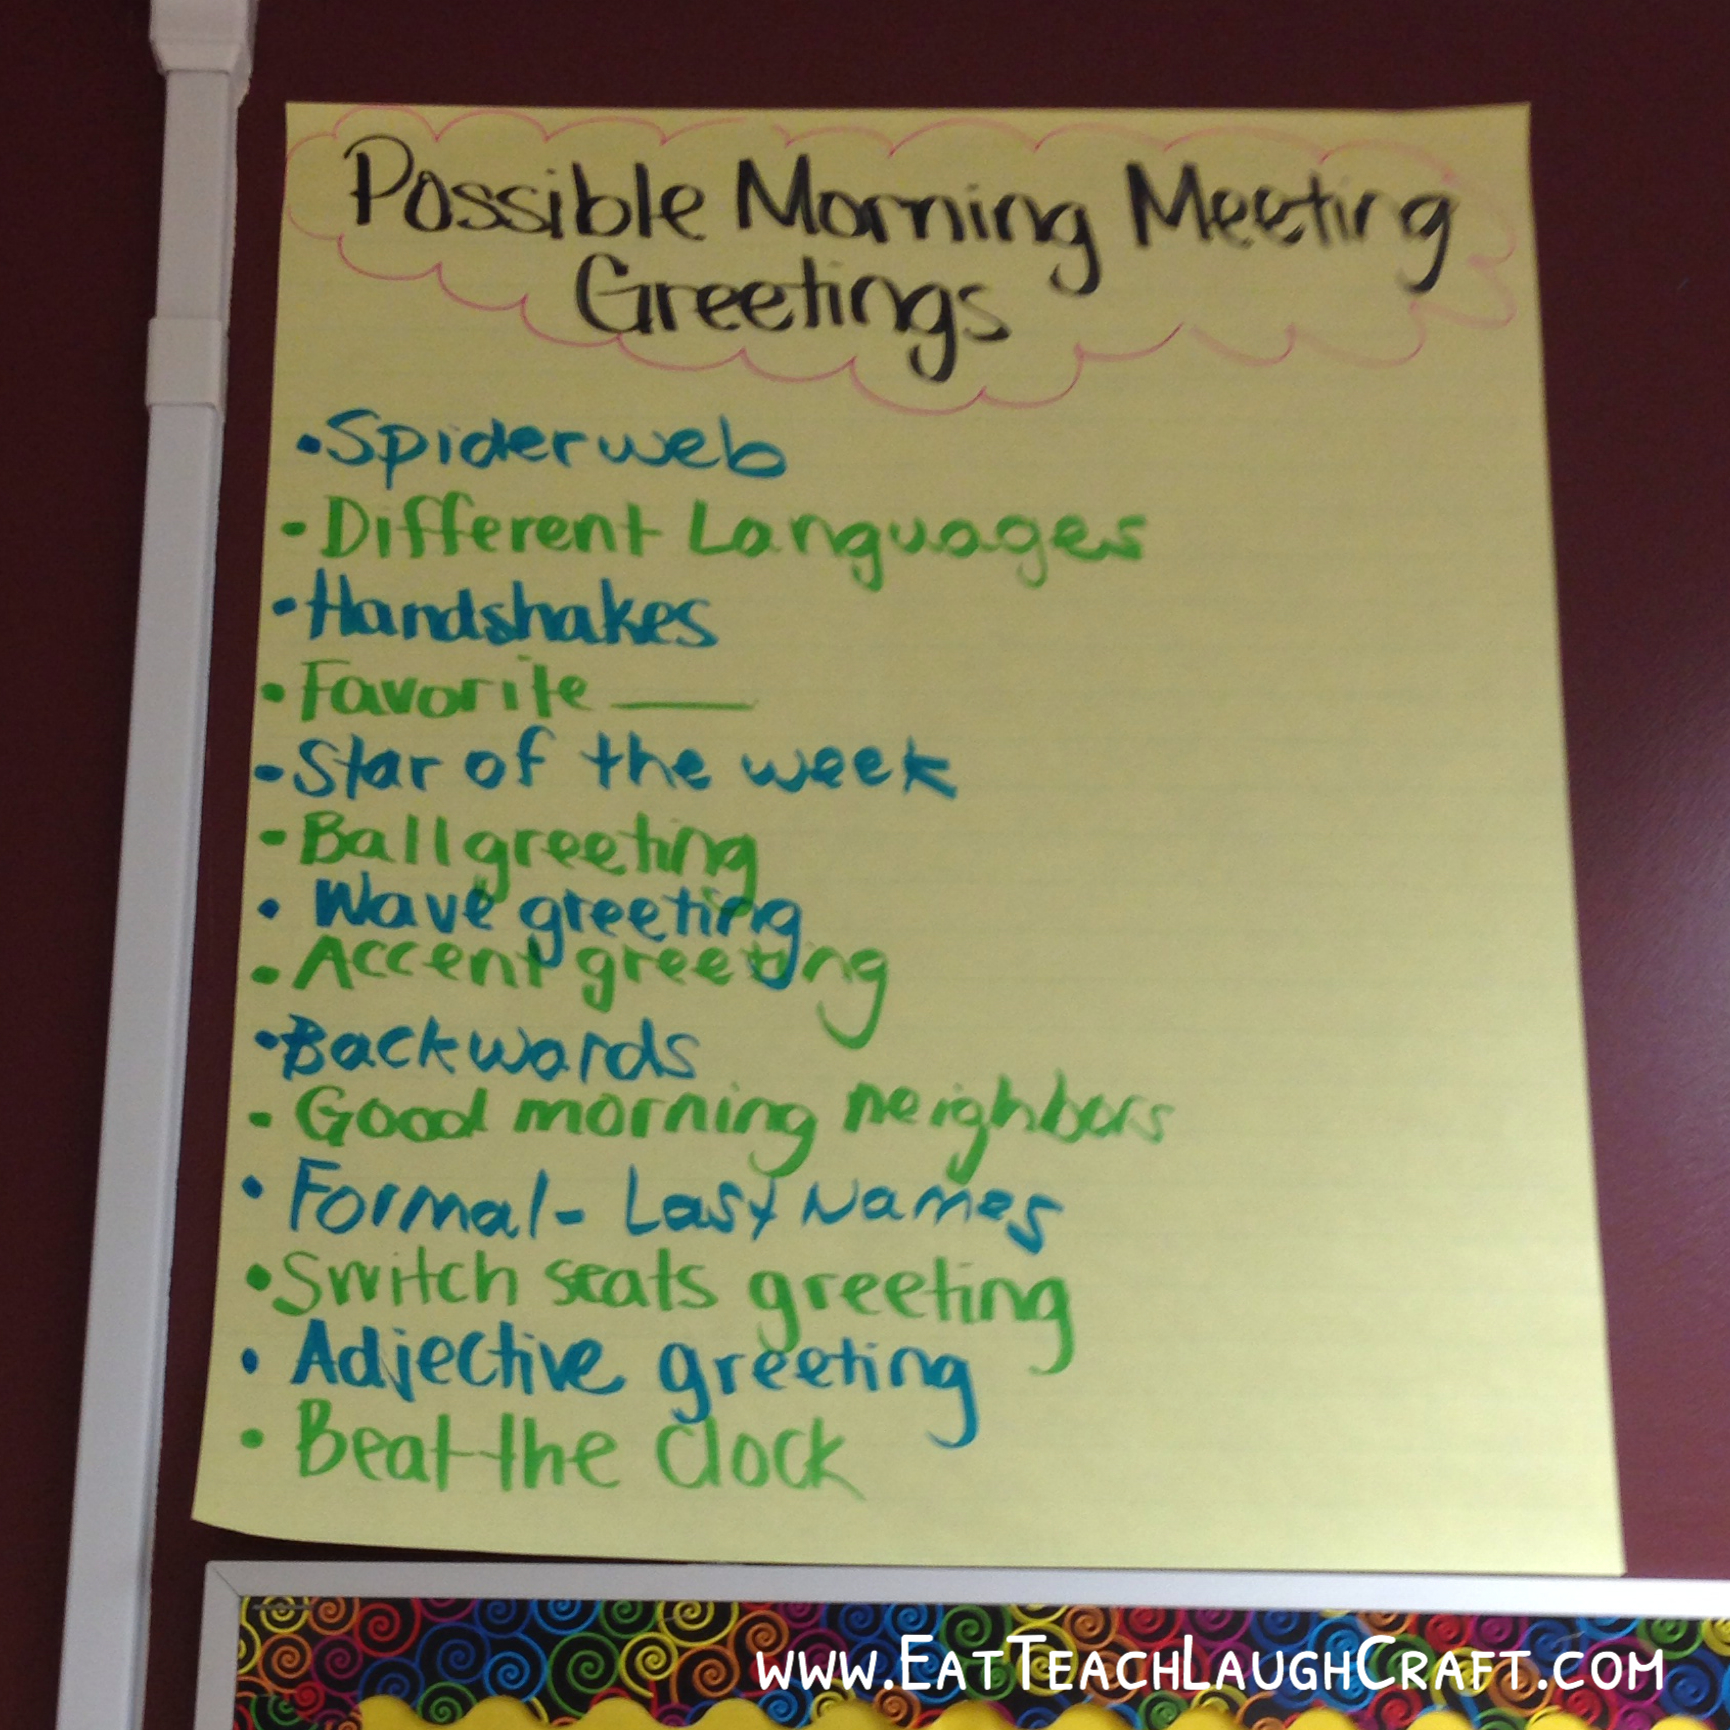 Morning meeting with upper elementary students eat teach laugh craft morning meeting greetings kristyandbryce Choice Image